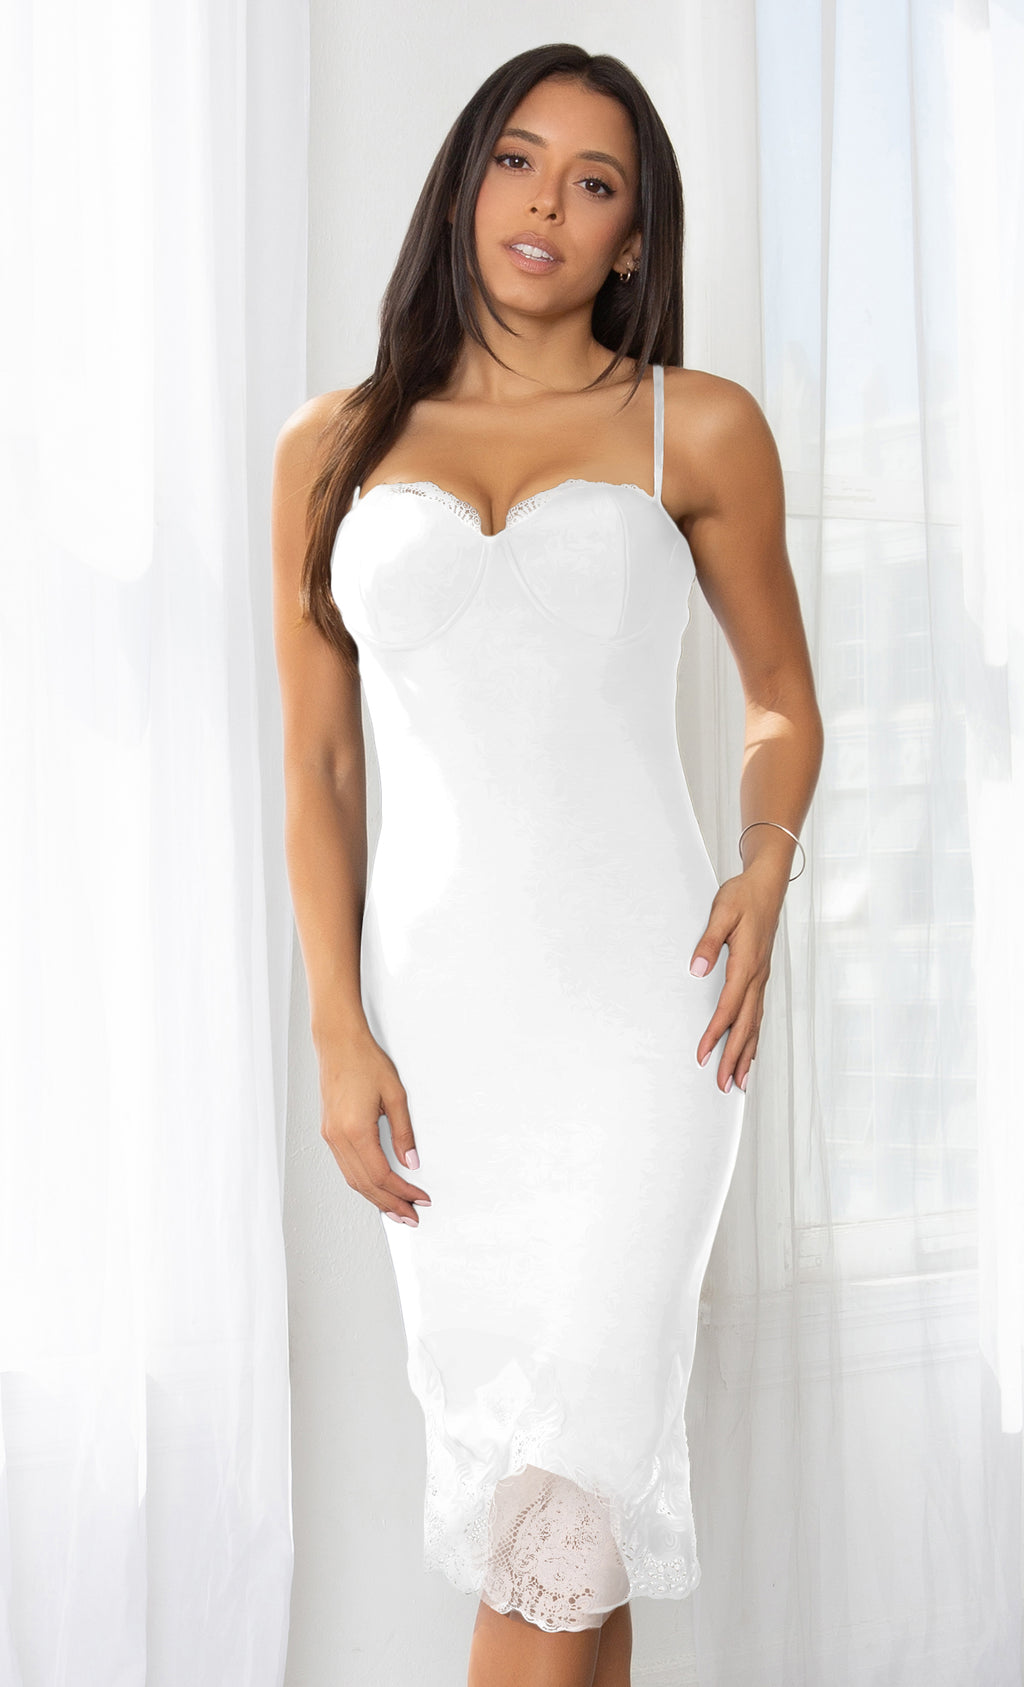 Touch Of Class White Sleeveless Spaghetti Strap Sweetheart Neck Lace Trim Bodycon Bandage Midi Dress